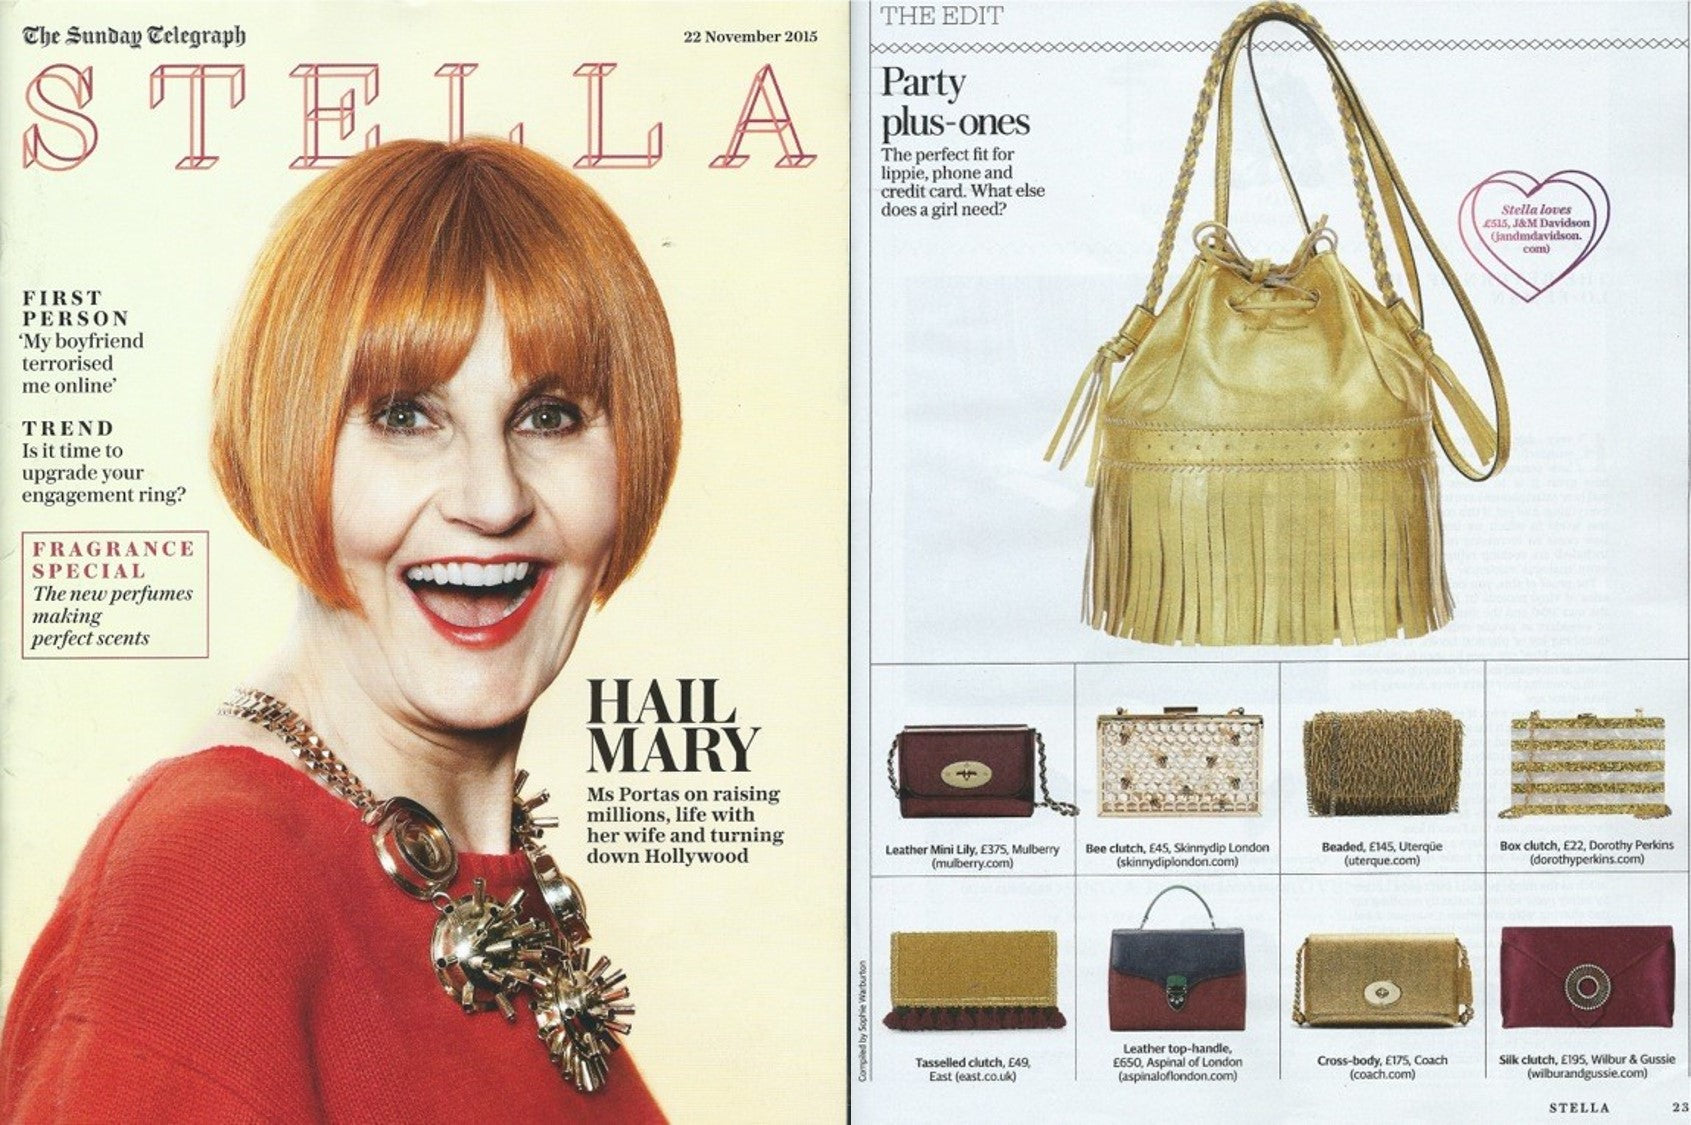 Wilbur & Gussie's 'Edith Burgundy' feature in Stella, Sunday Telegraph.